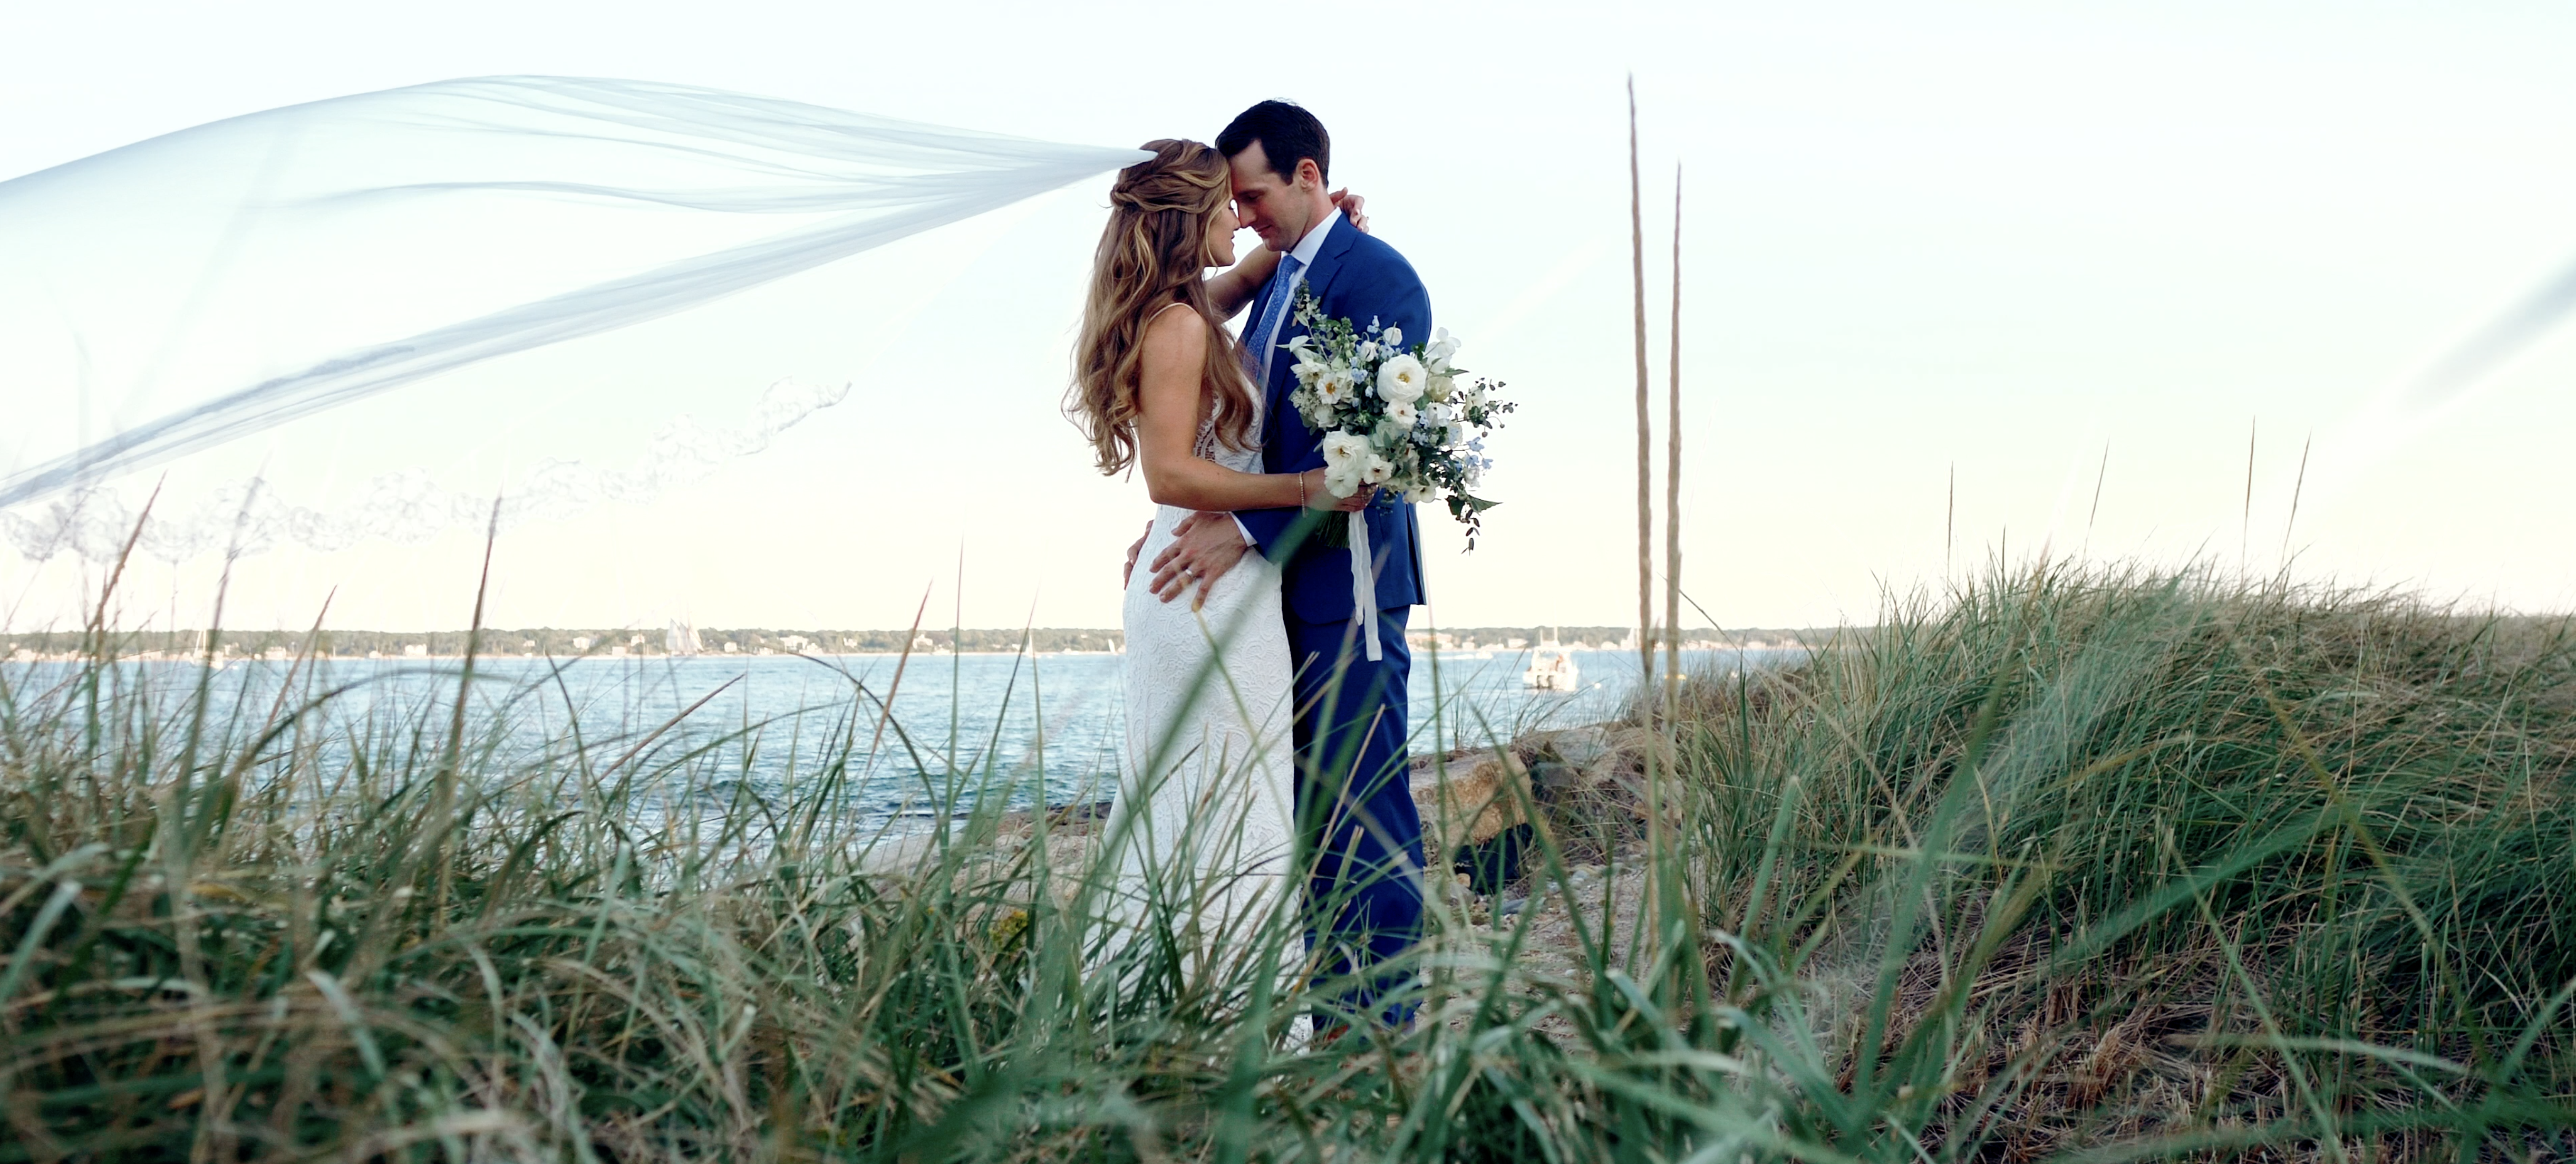 Alexis + Tom | Massachusetts, Massachusetts | Martha's Vineyard